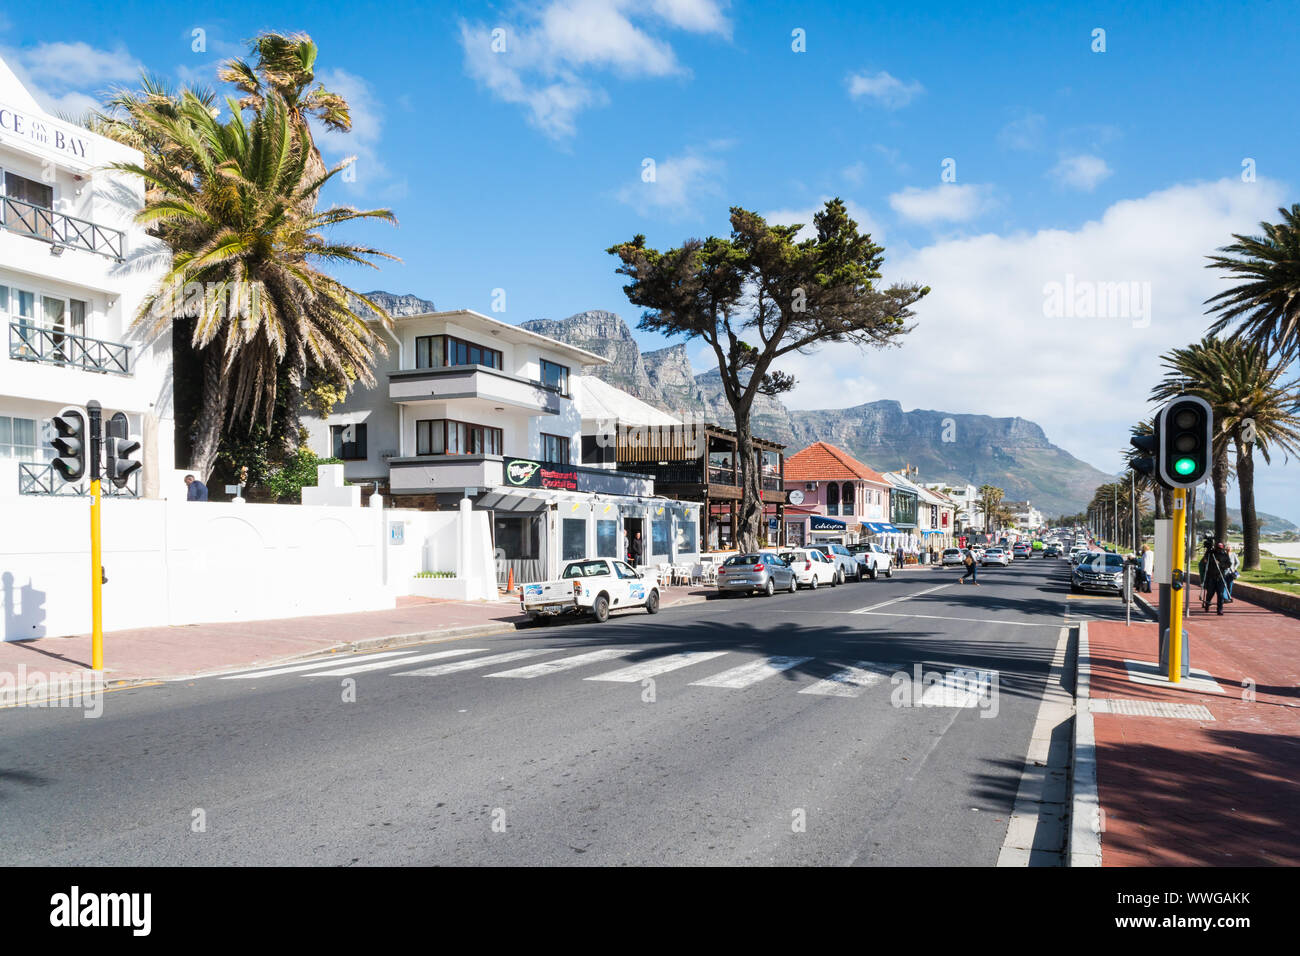 Camps Bay, upmarket suburb of Cape Town, South Africa, looking down the main road at shops, restaurants and apartments on a Spring day Stock Photo